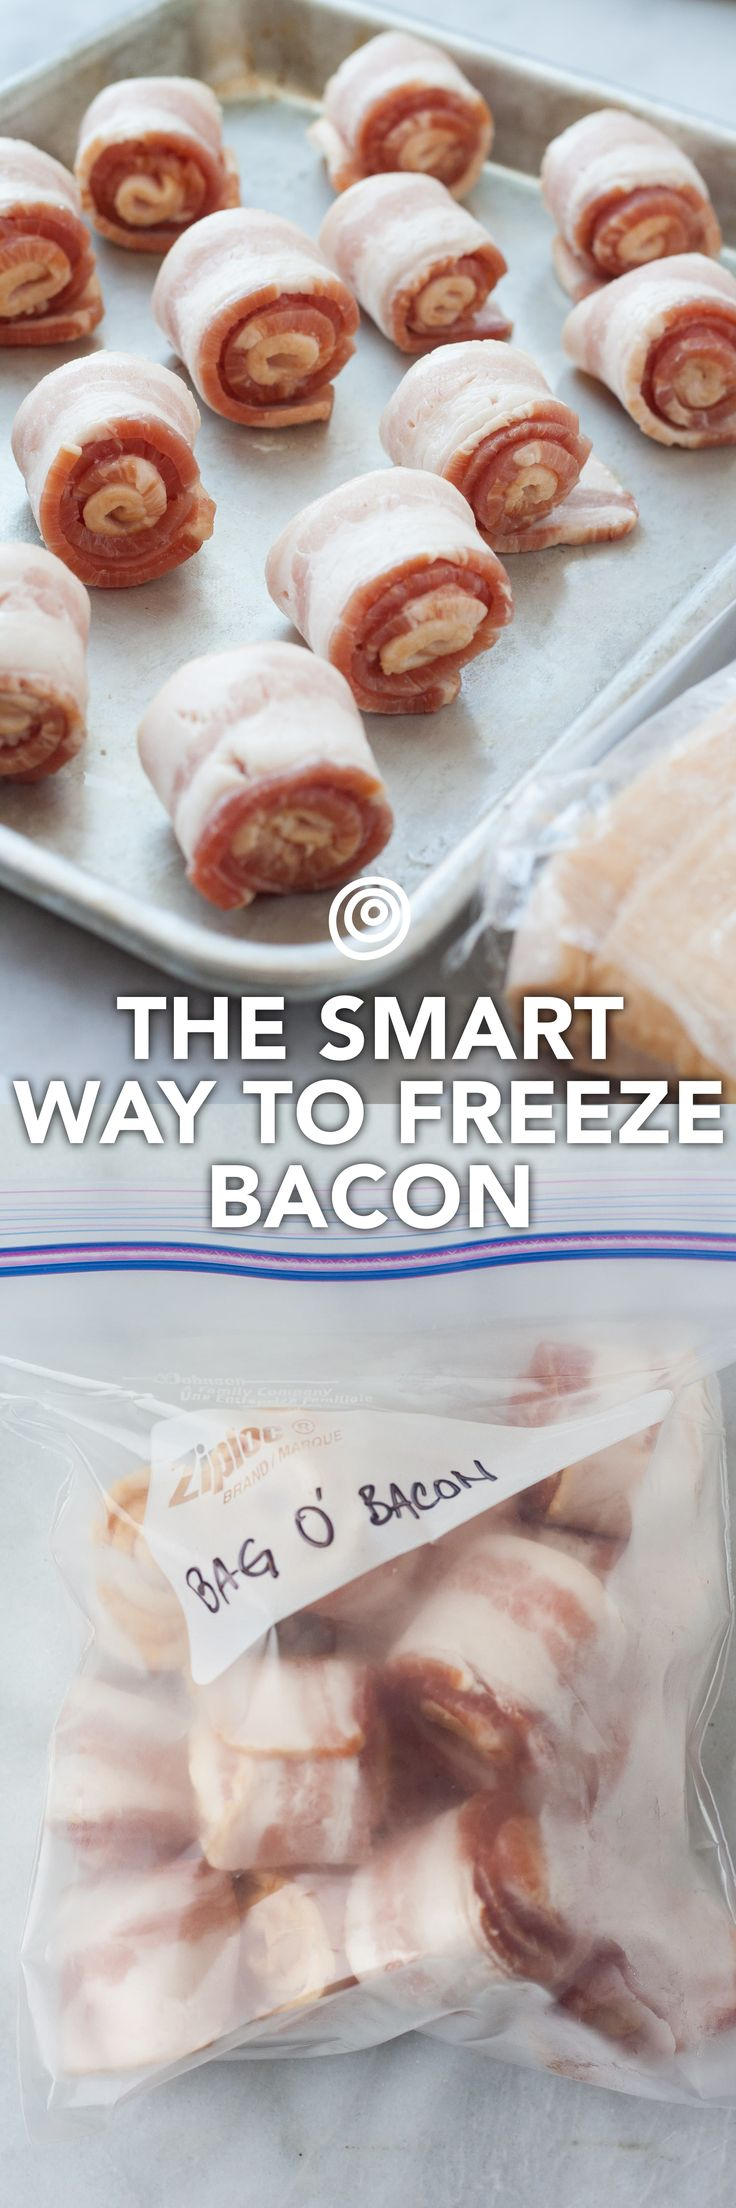 This is the BEST way to freeze bacon. Add this to your kitchen and cooking tips and tricks board. Makes weekend breakfasts, weeknight pastas, and special summer BLTs so FAST to make because the rolls defrost in no time, and you can pull out exactly how much you need.